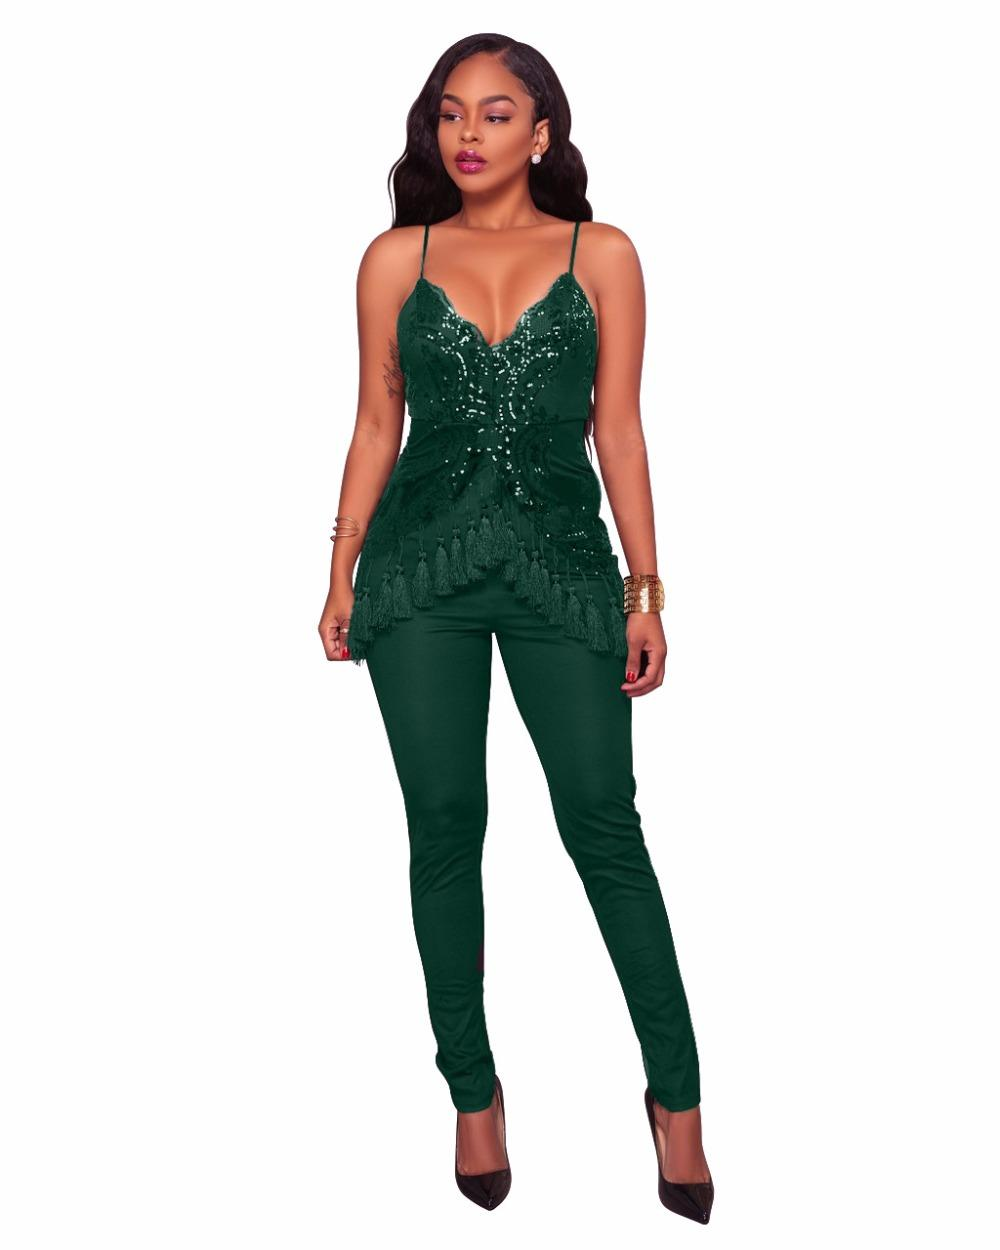 Humor Sexy Lace Skinny Bodysuit Boat Neck Jumpsuit Romper For Women Overall Cute Black Bodysuit Playsuit Women's Clothing